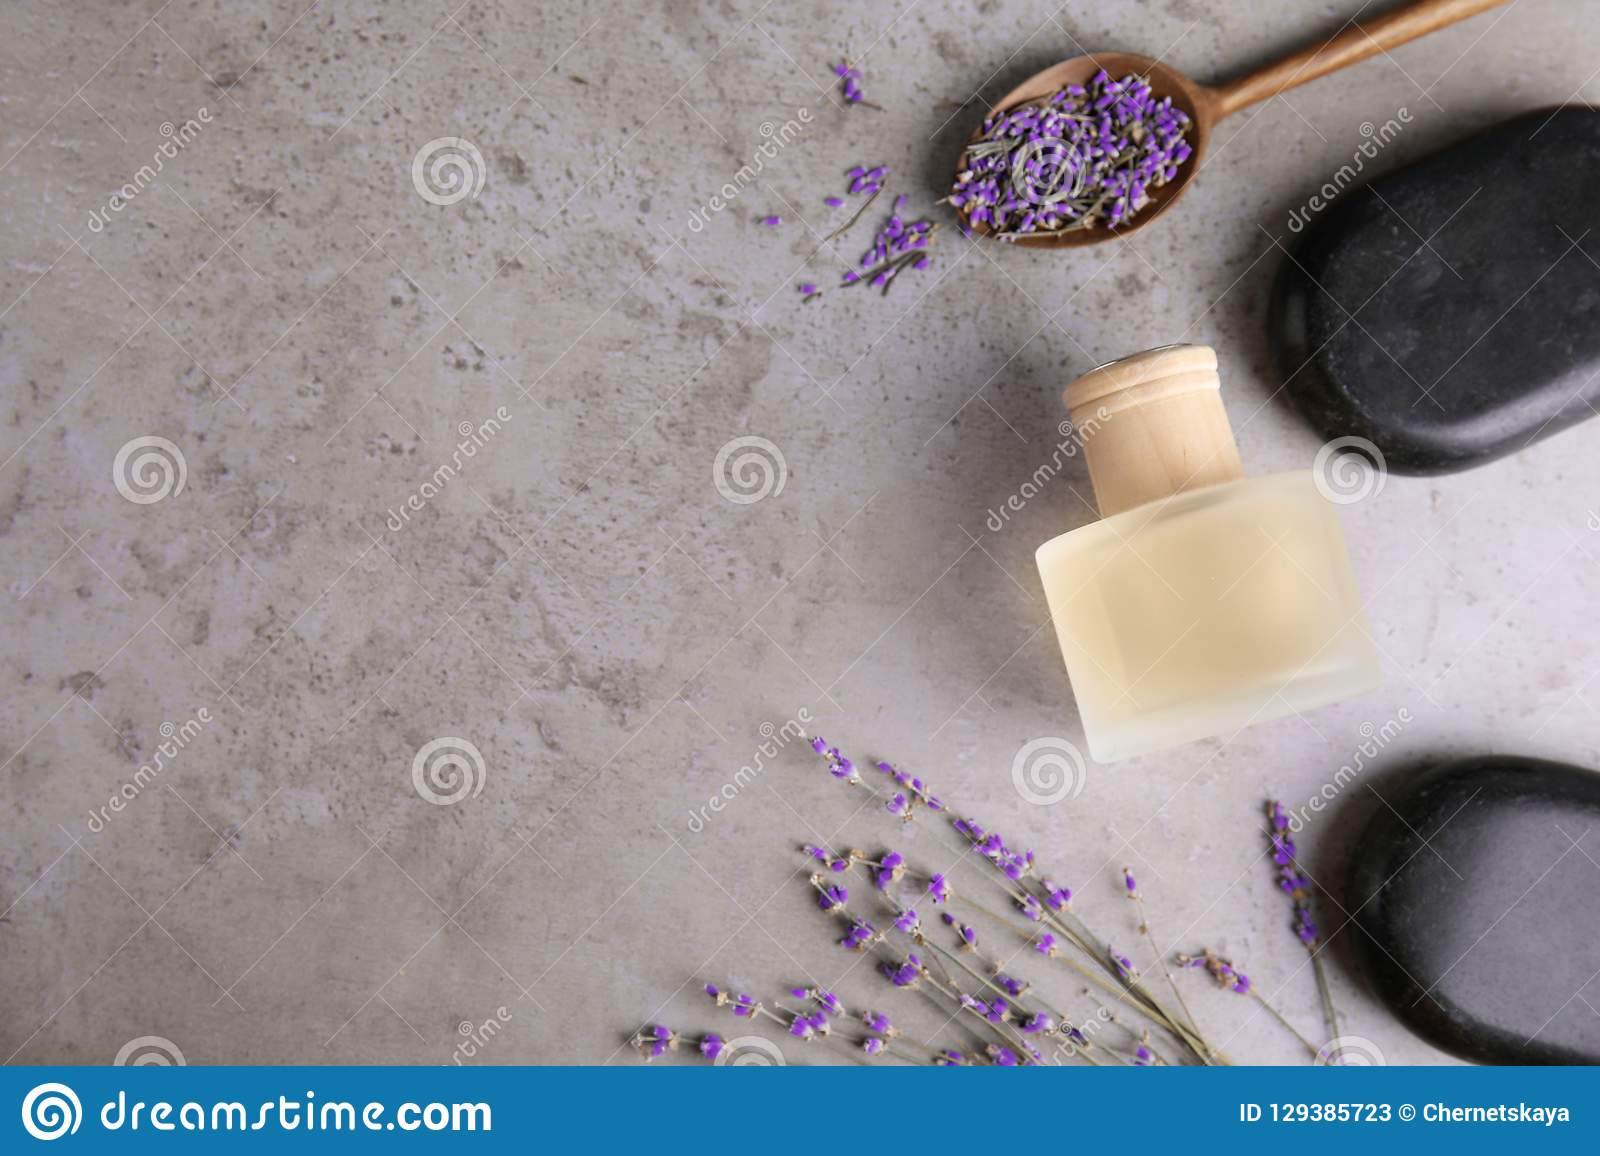 Flat lay composition with natural herbal oil and lavender flowers on color background.